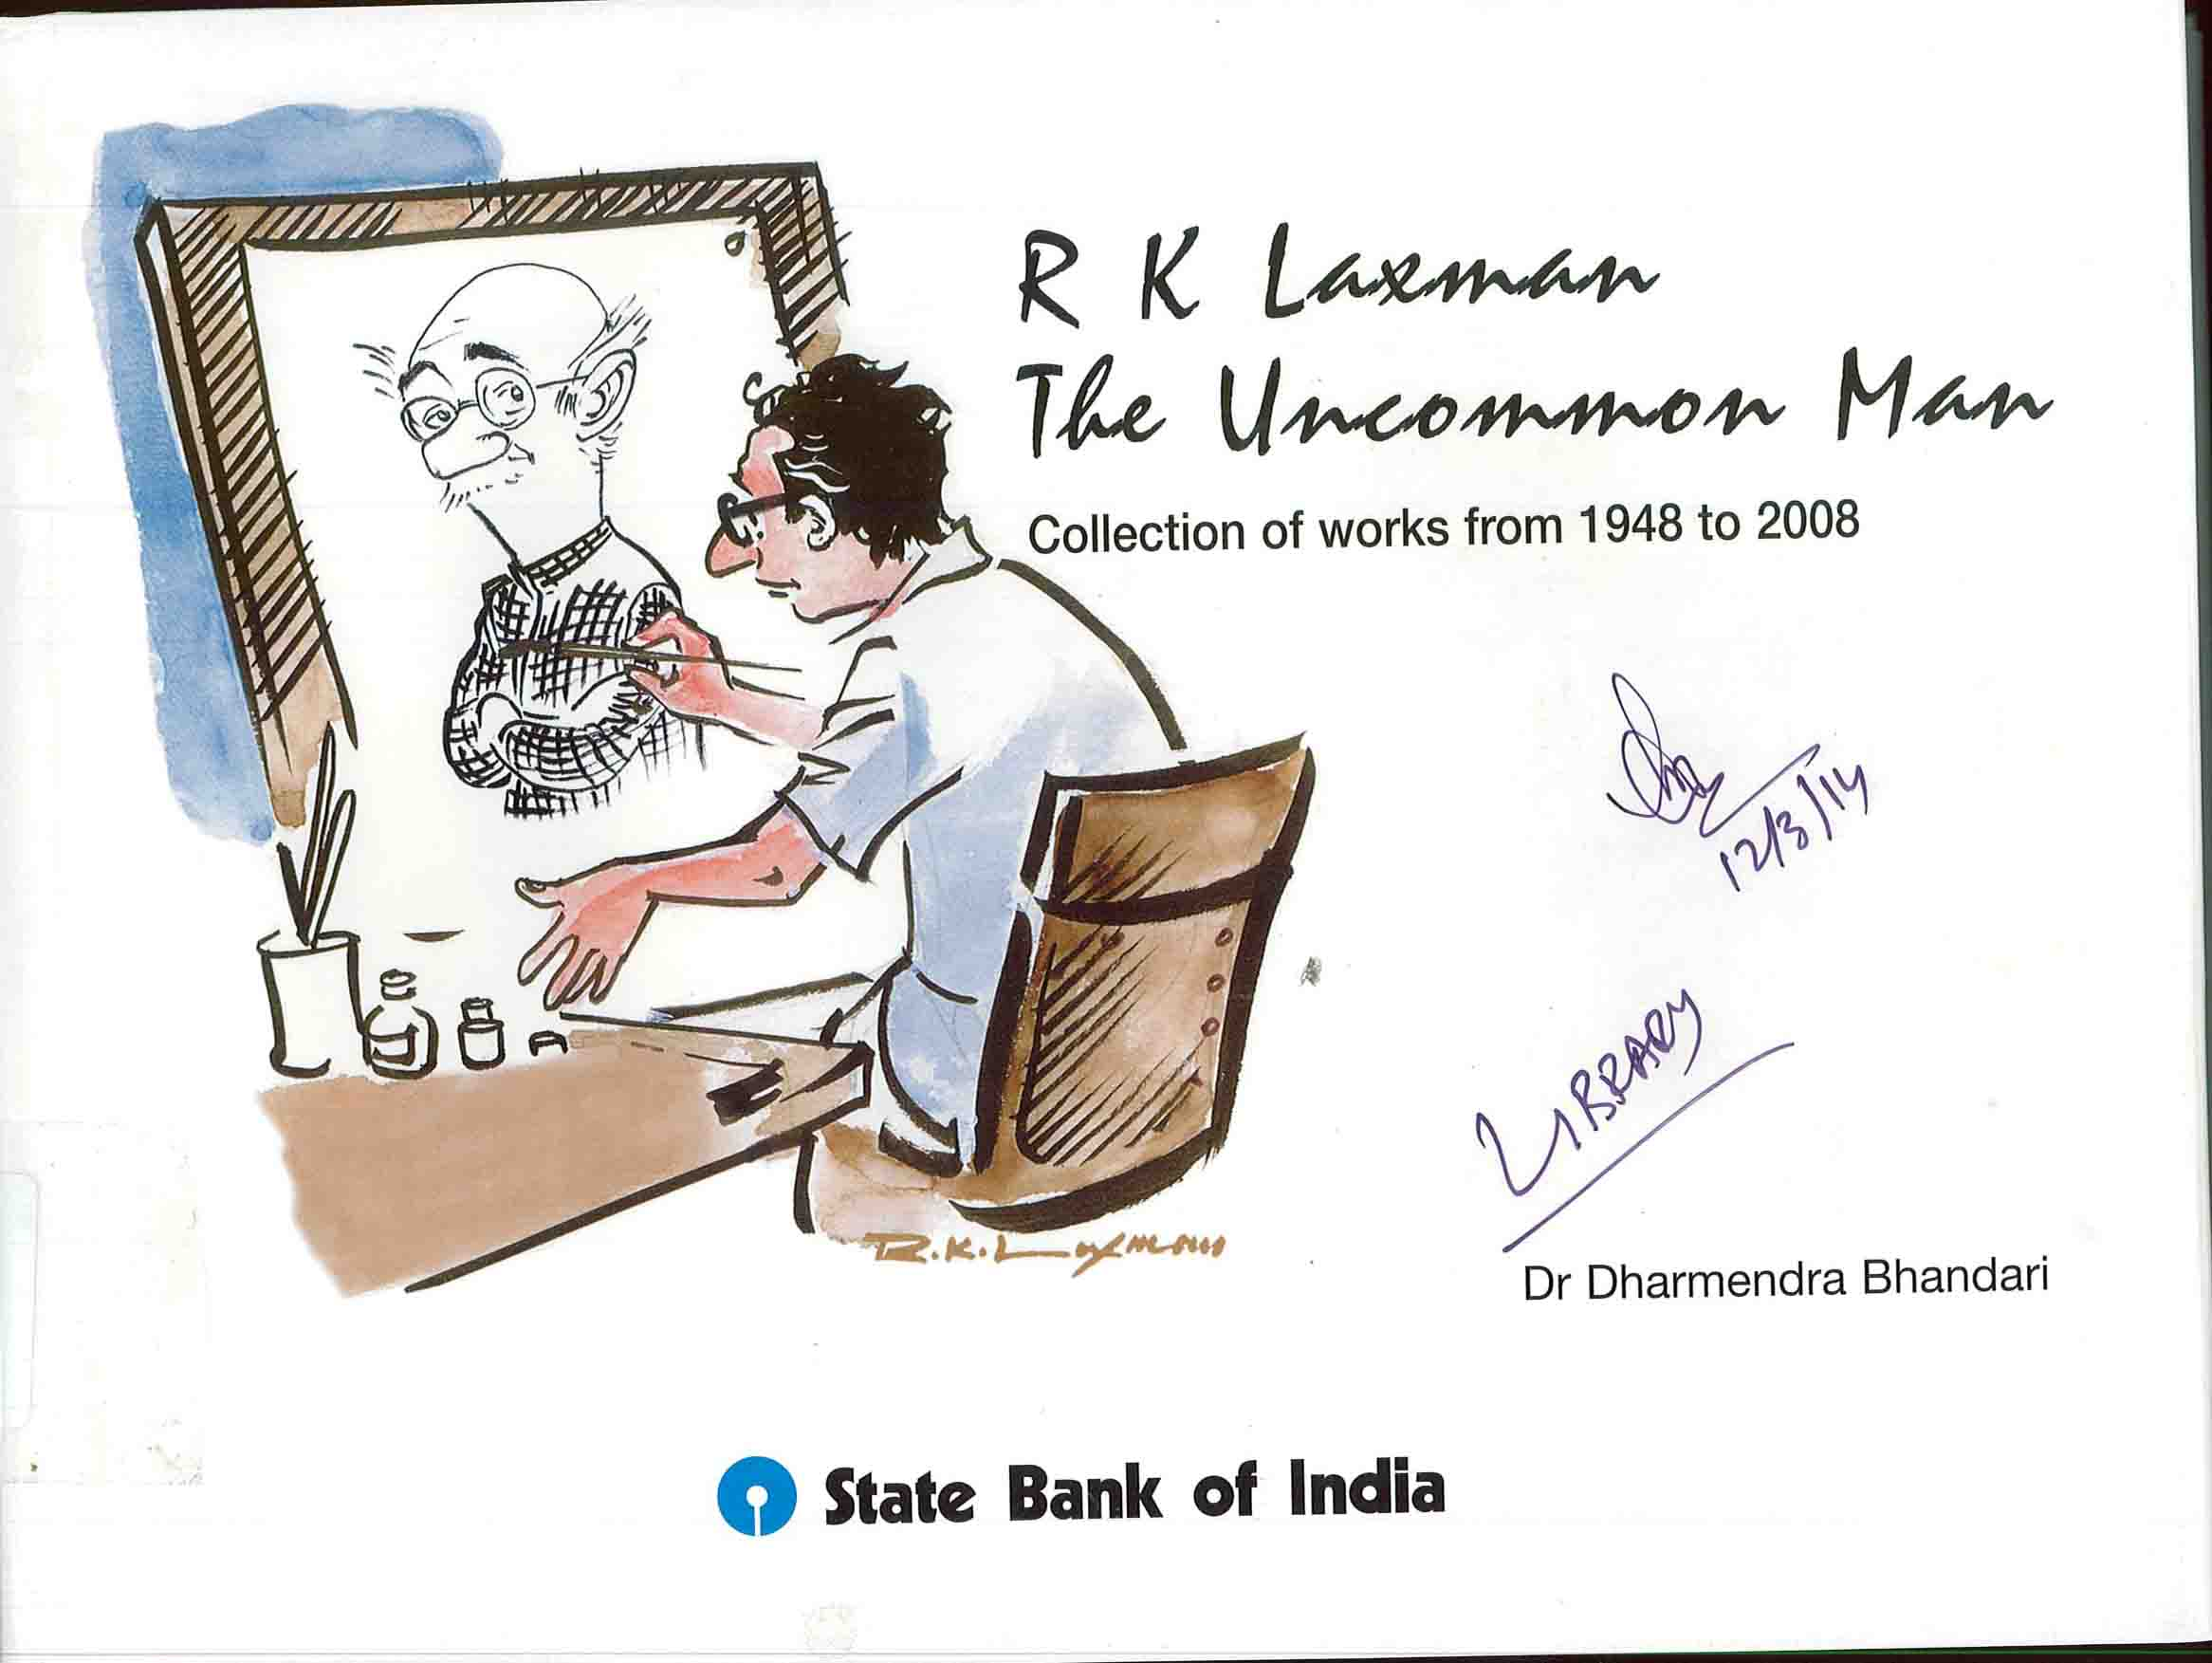 R. K. Laxman, the Uncommon Man : collection of works from 1948 to 2008